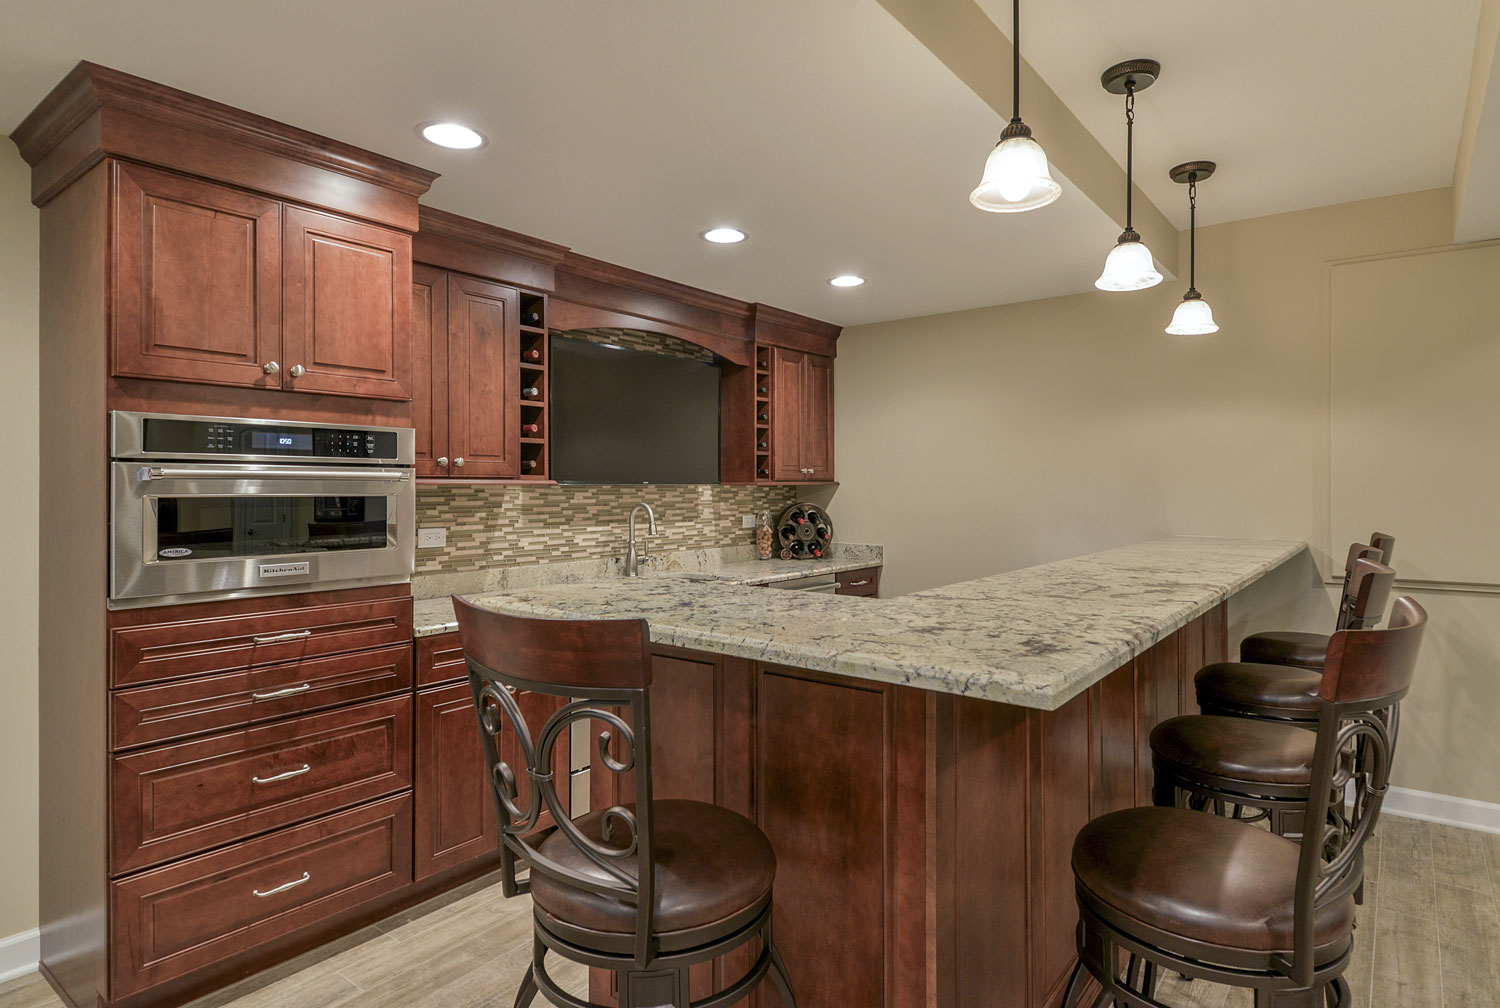 Full bar, kitchenette, bathroom Finished Basement Remodeling Geneva IL Sebring Services